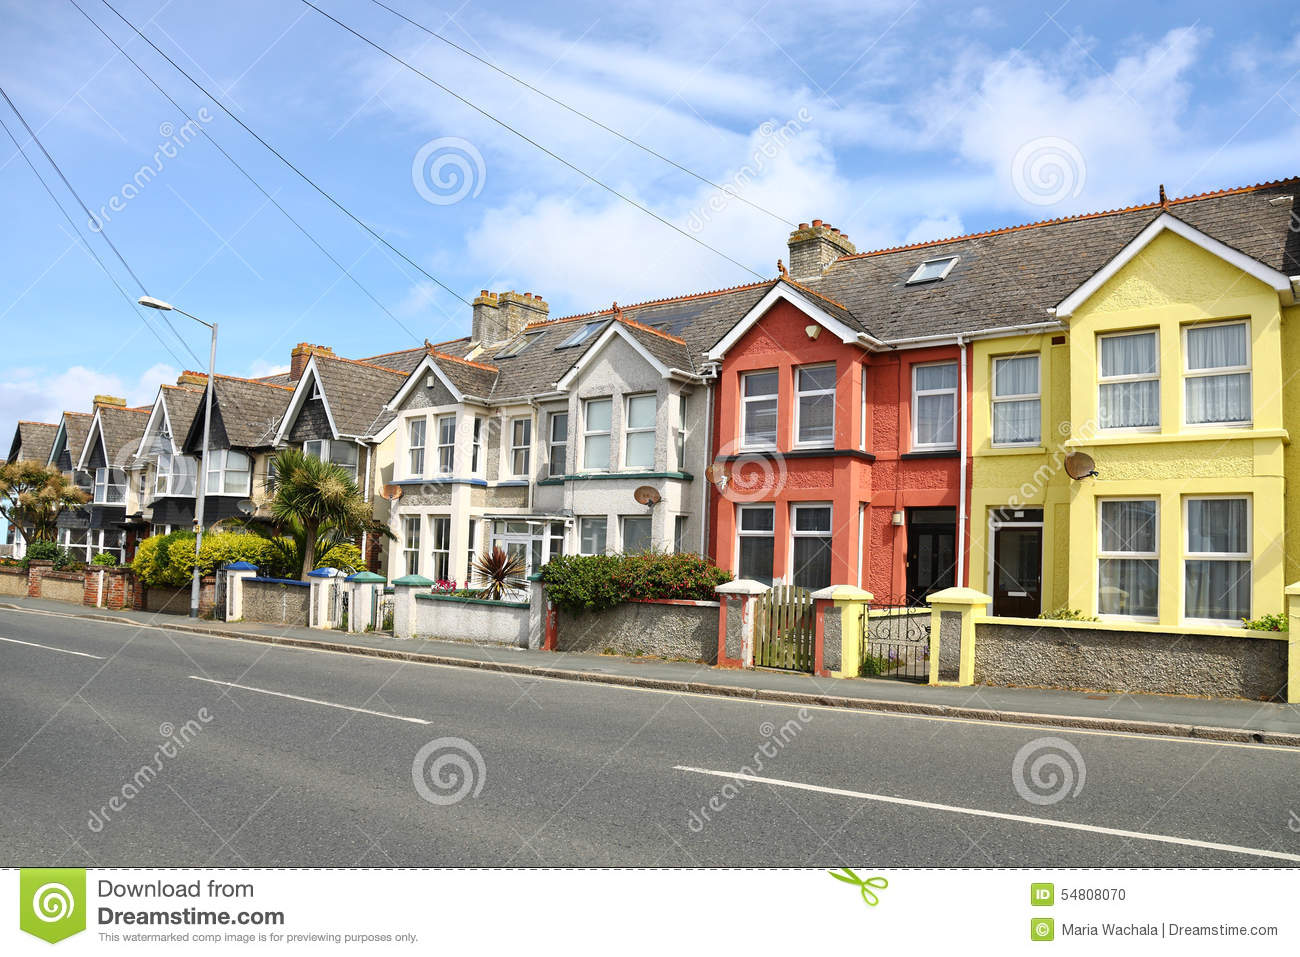 English street of terraced house